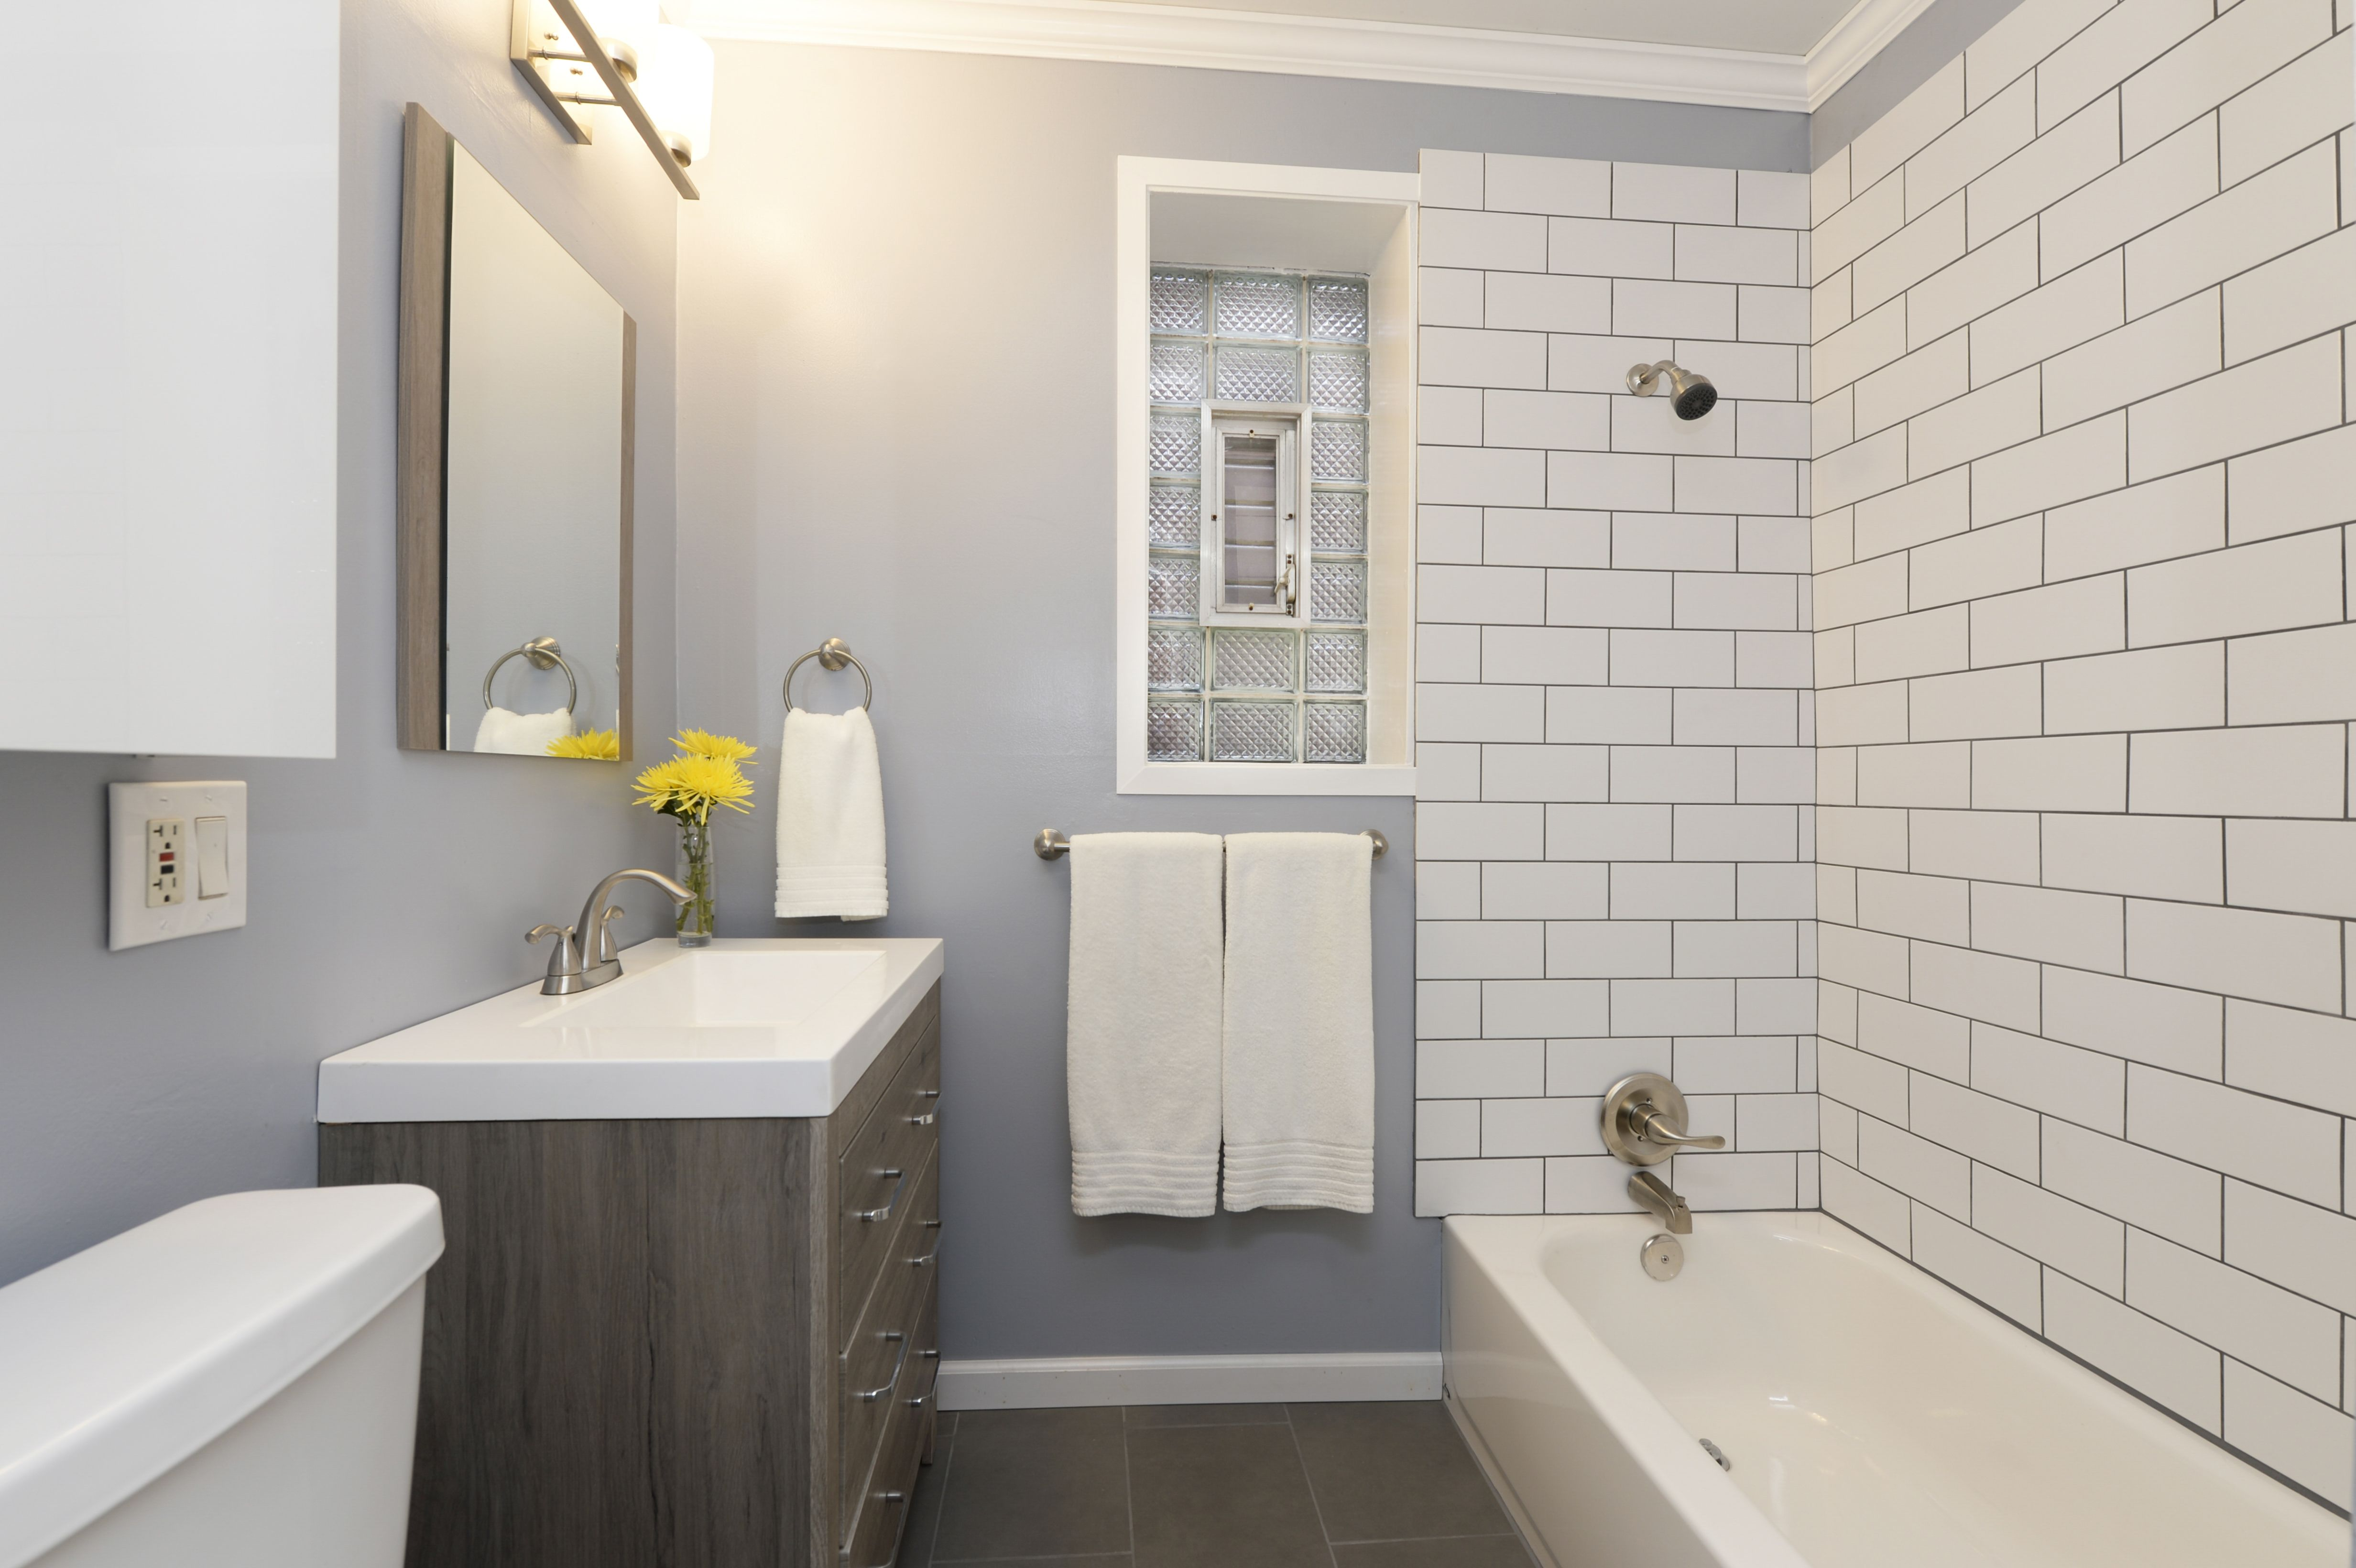 The Bathroom Rehab At This Vintage Apartment Added White Subway Tile And Floating Wooden Vanity With Apartment Bathroom Grey Bathrooms Small Apartment Bathroom